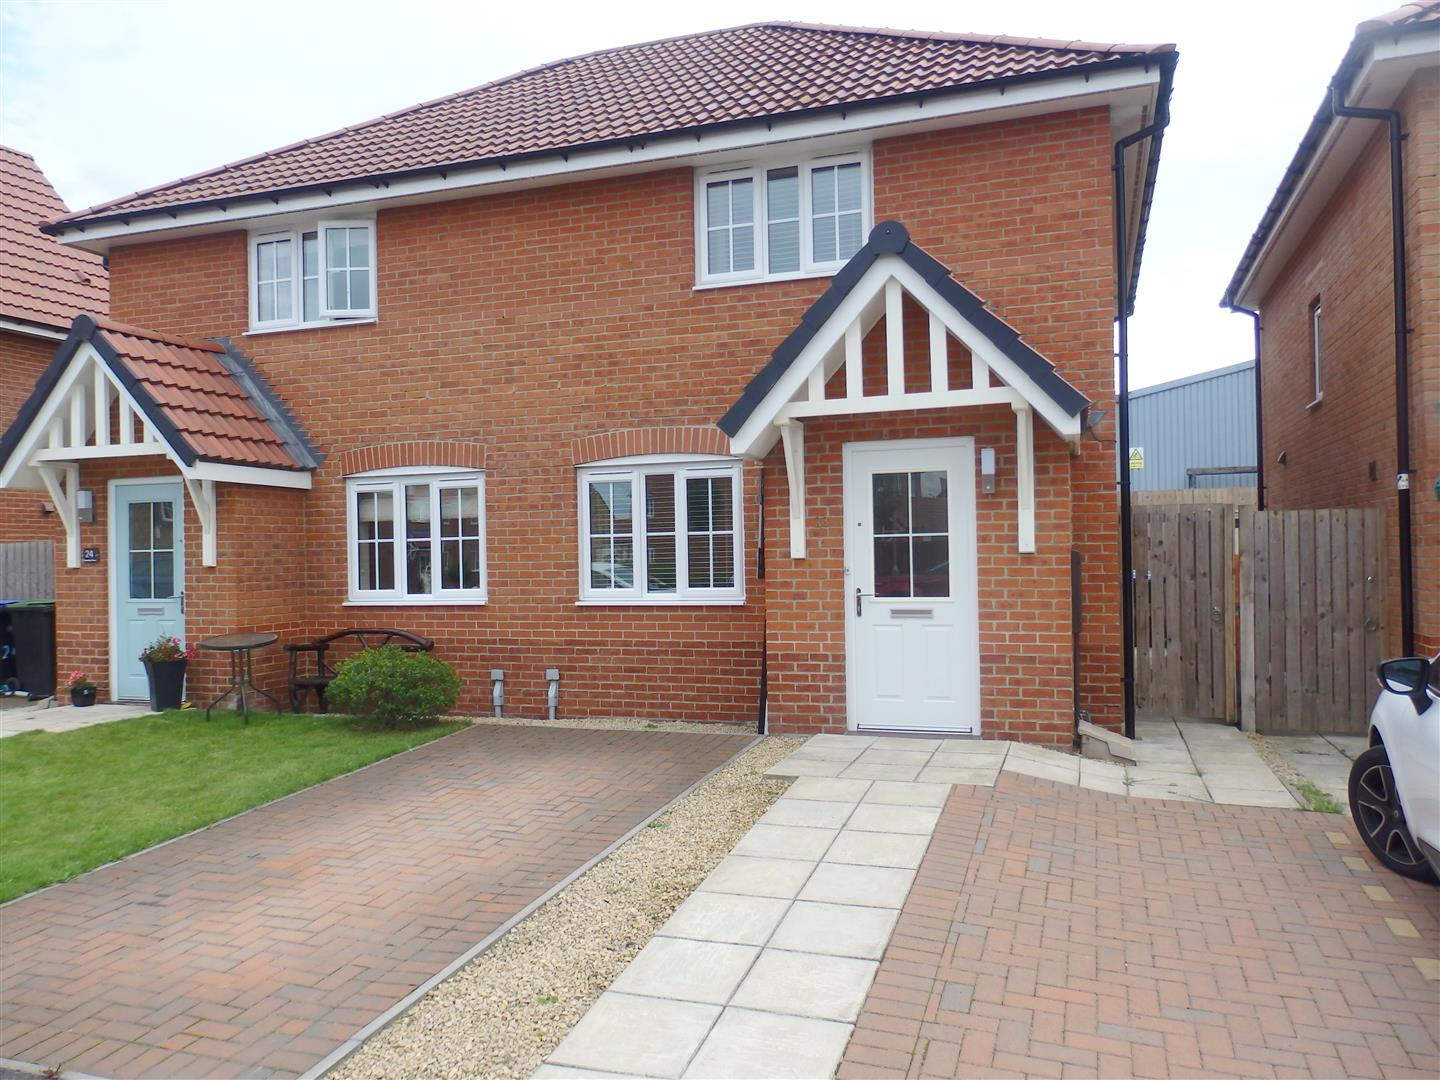 Faraday Close, Spennymoor